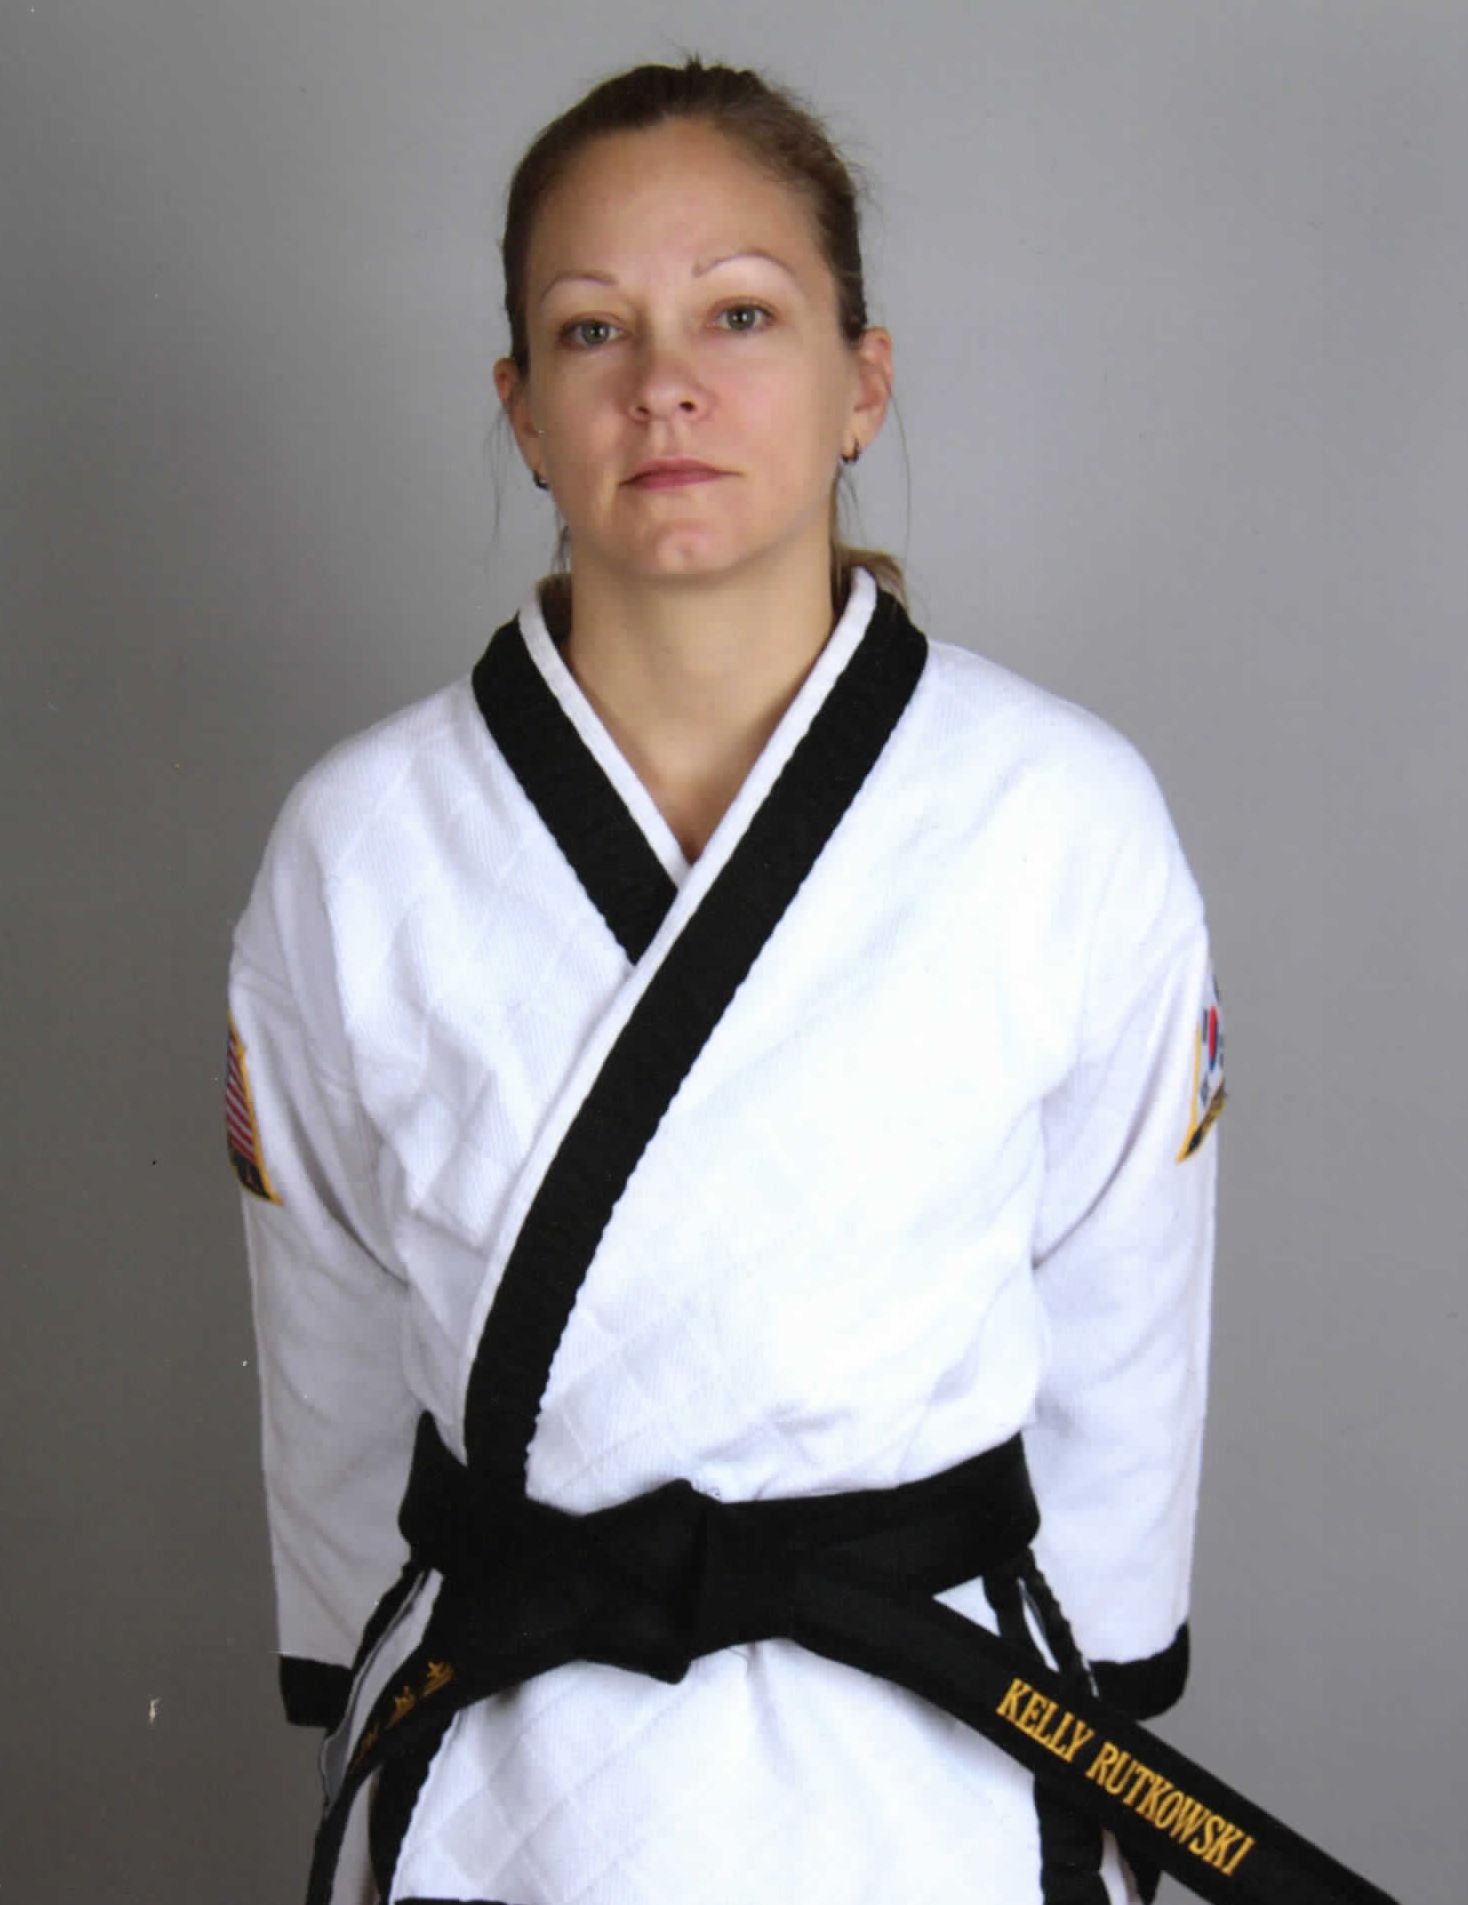 Senior Instructor Kelly Rutkowski  began her training at WMAC in 1998 and currently holds the rank of 3rd Degree Black Belt. She also has trained in Judo and Muay Thai. Kelly is a NYS Licensed Acupuncturist with a Master of Science in Oriental Medicine from the Tri-State College of Acupuncture.